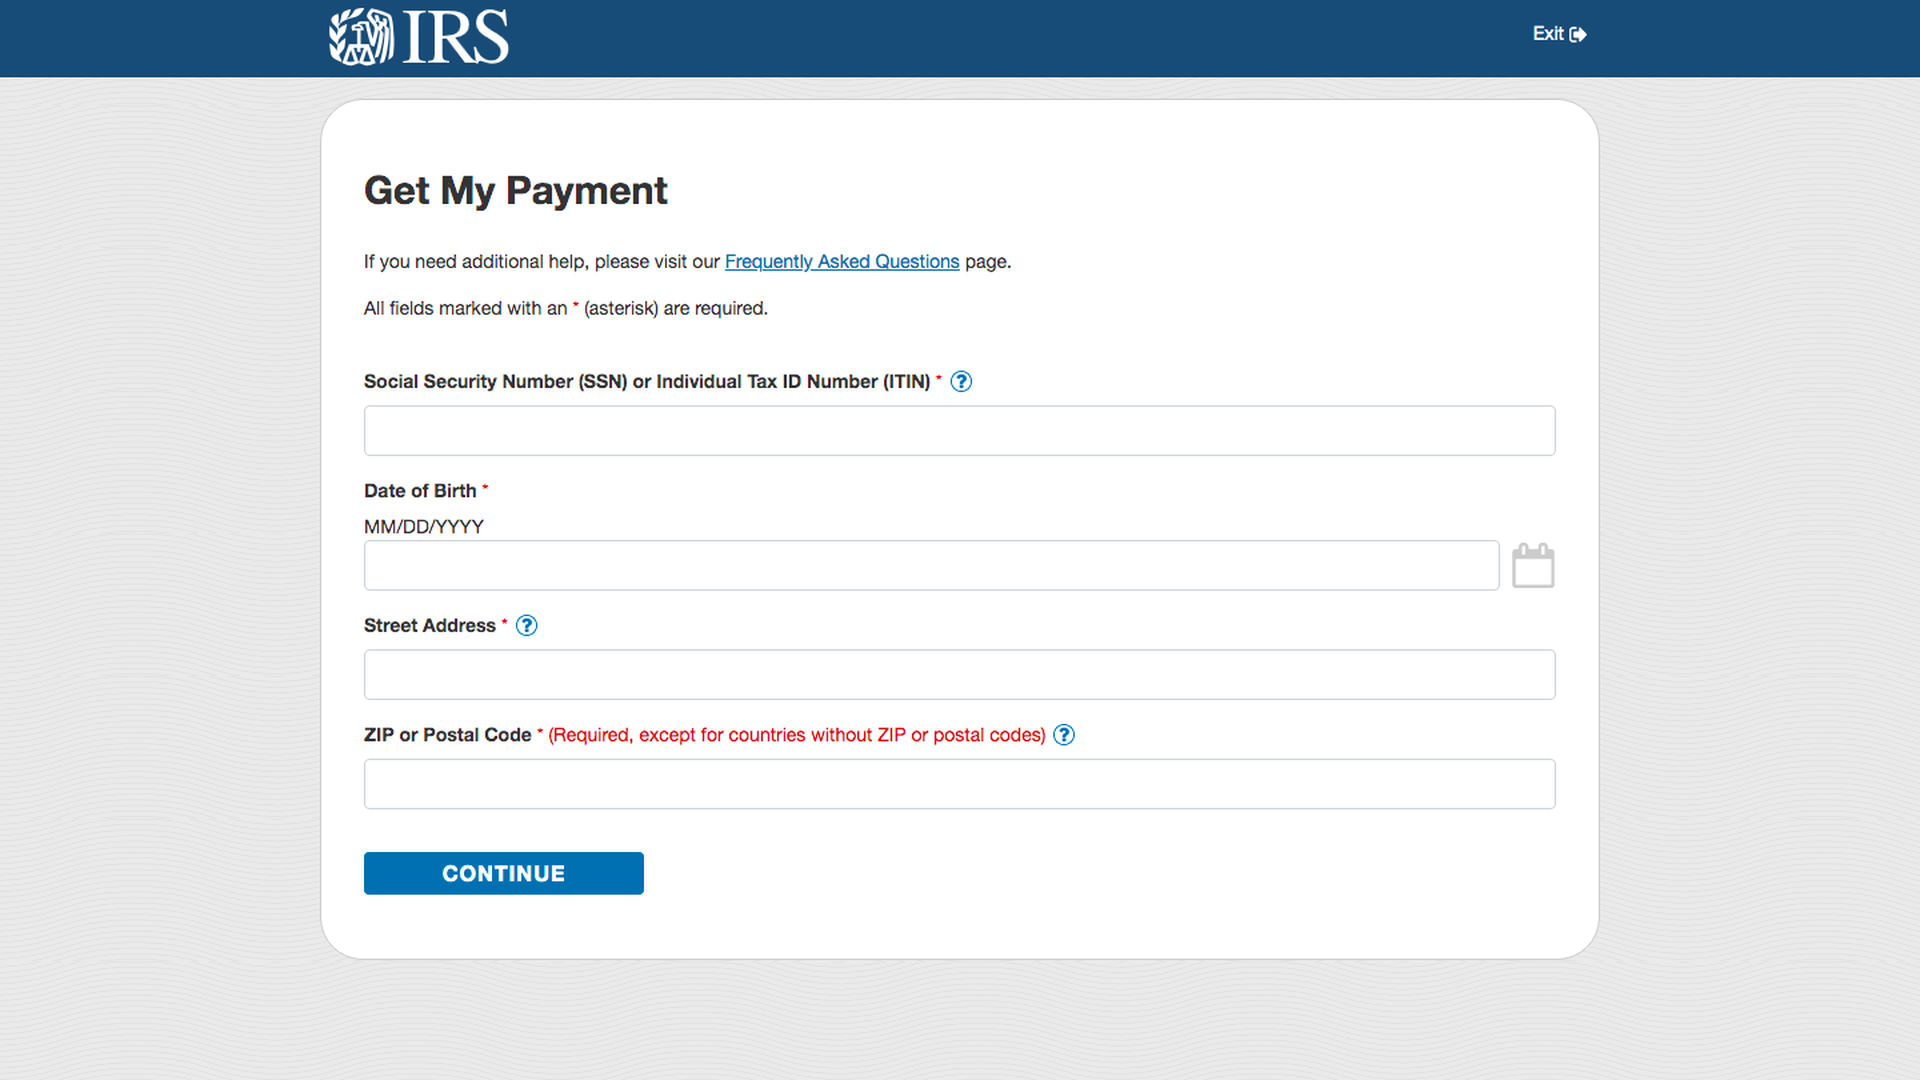 New Irs Website Allows Tracking Of Coronavirus Stimulus Payment Axios Follow the refund grapevine with igmr for sharing, updates and info on problems with. new irs website allows tracking of